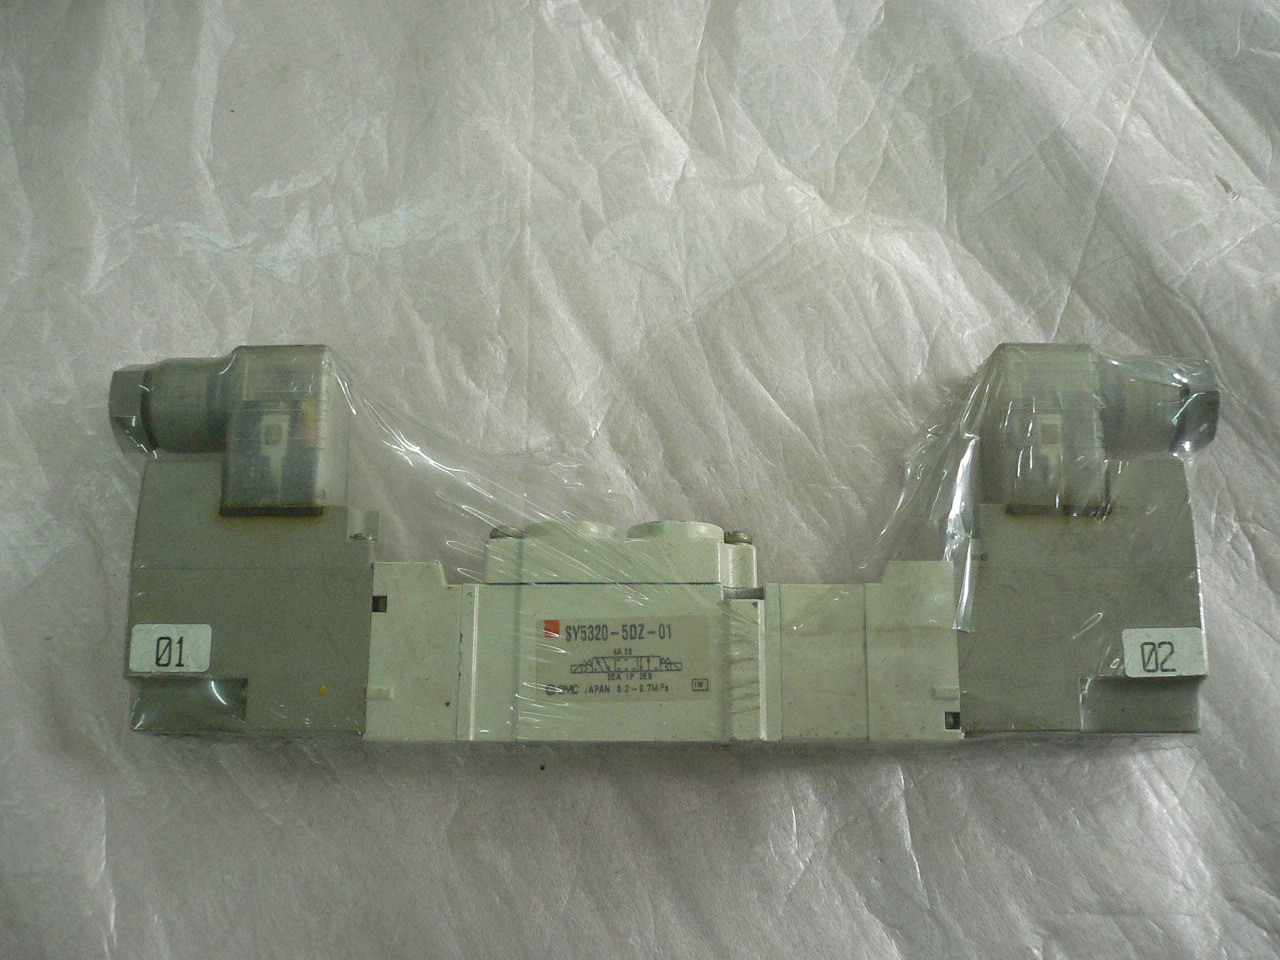 SMCSY5320-5DZ-01 electronically controlled directional valve